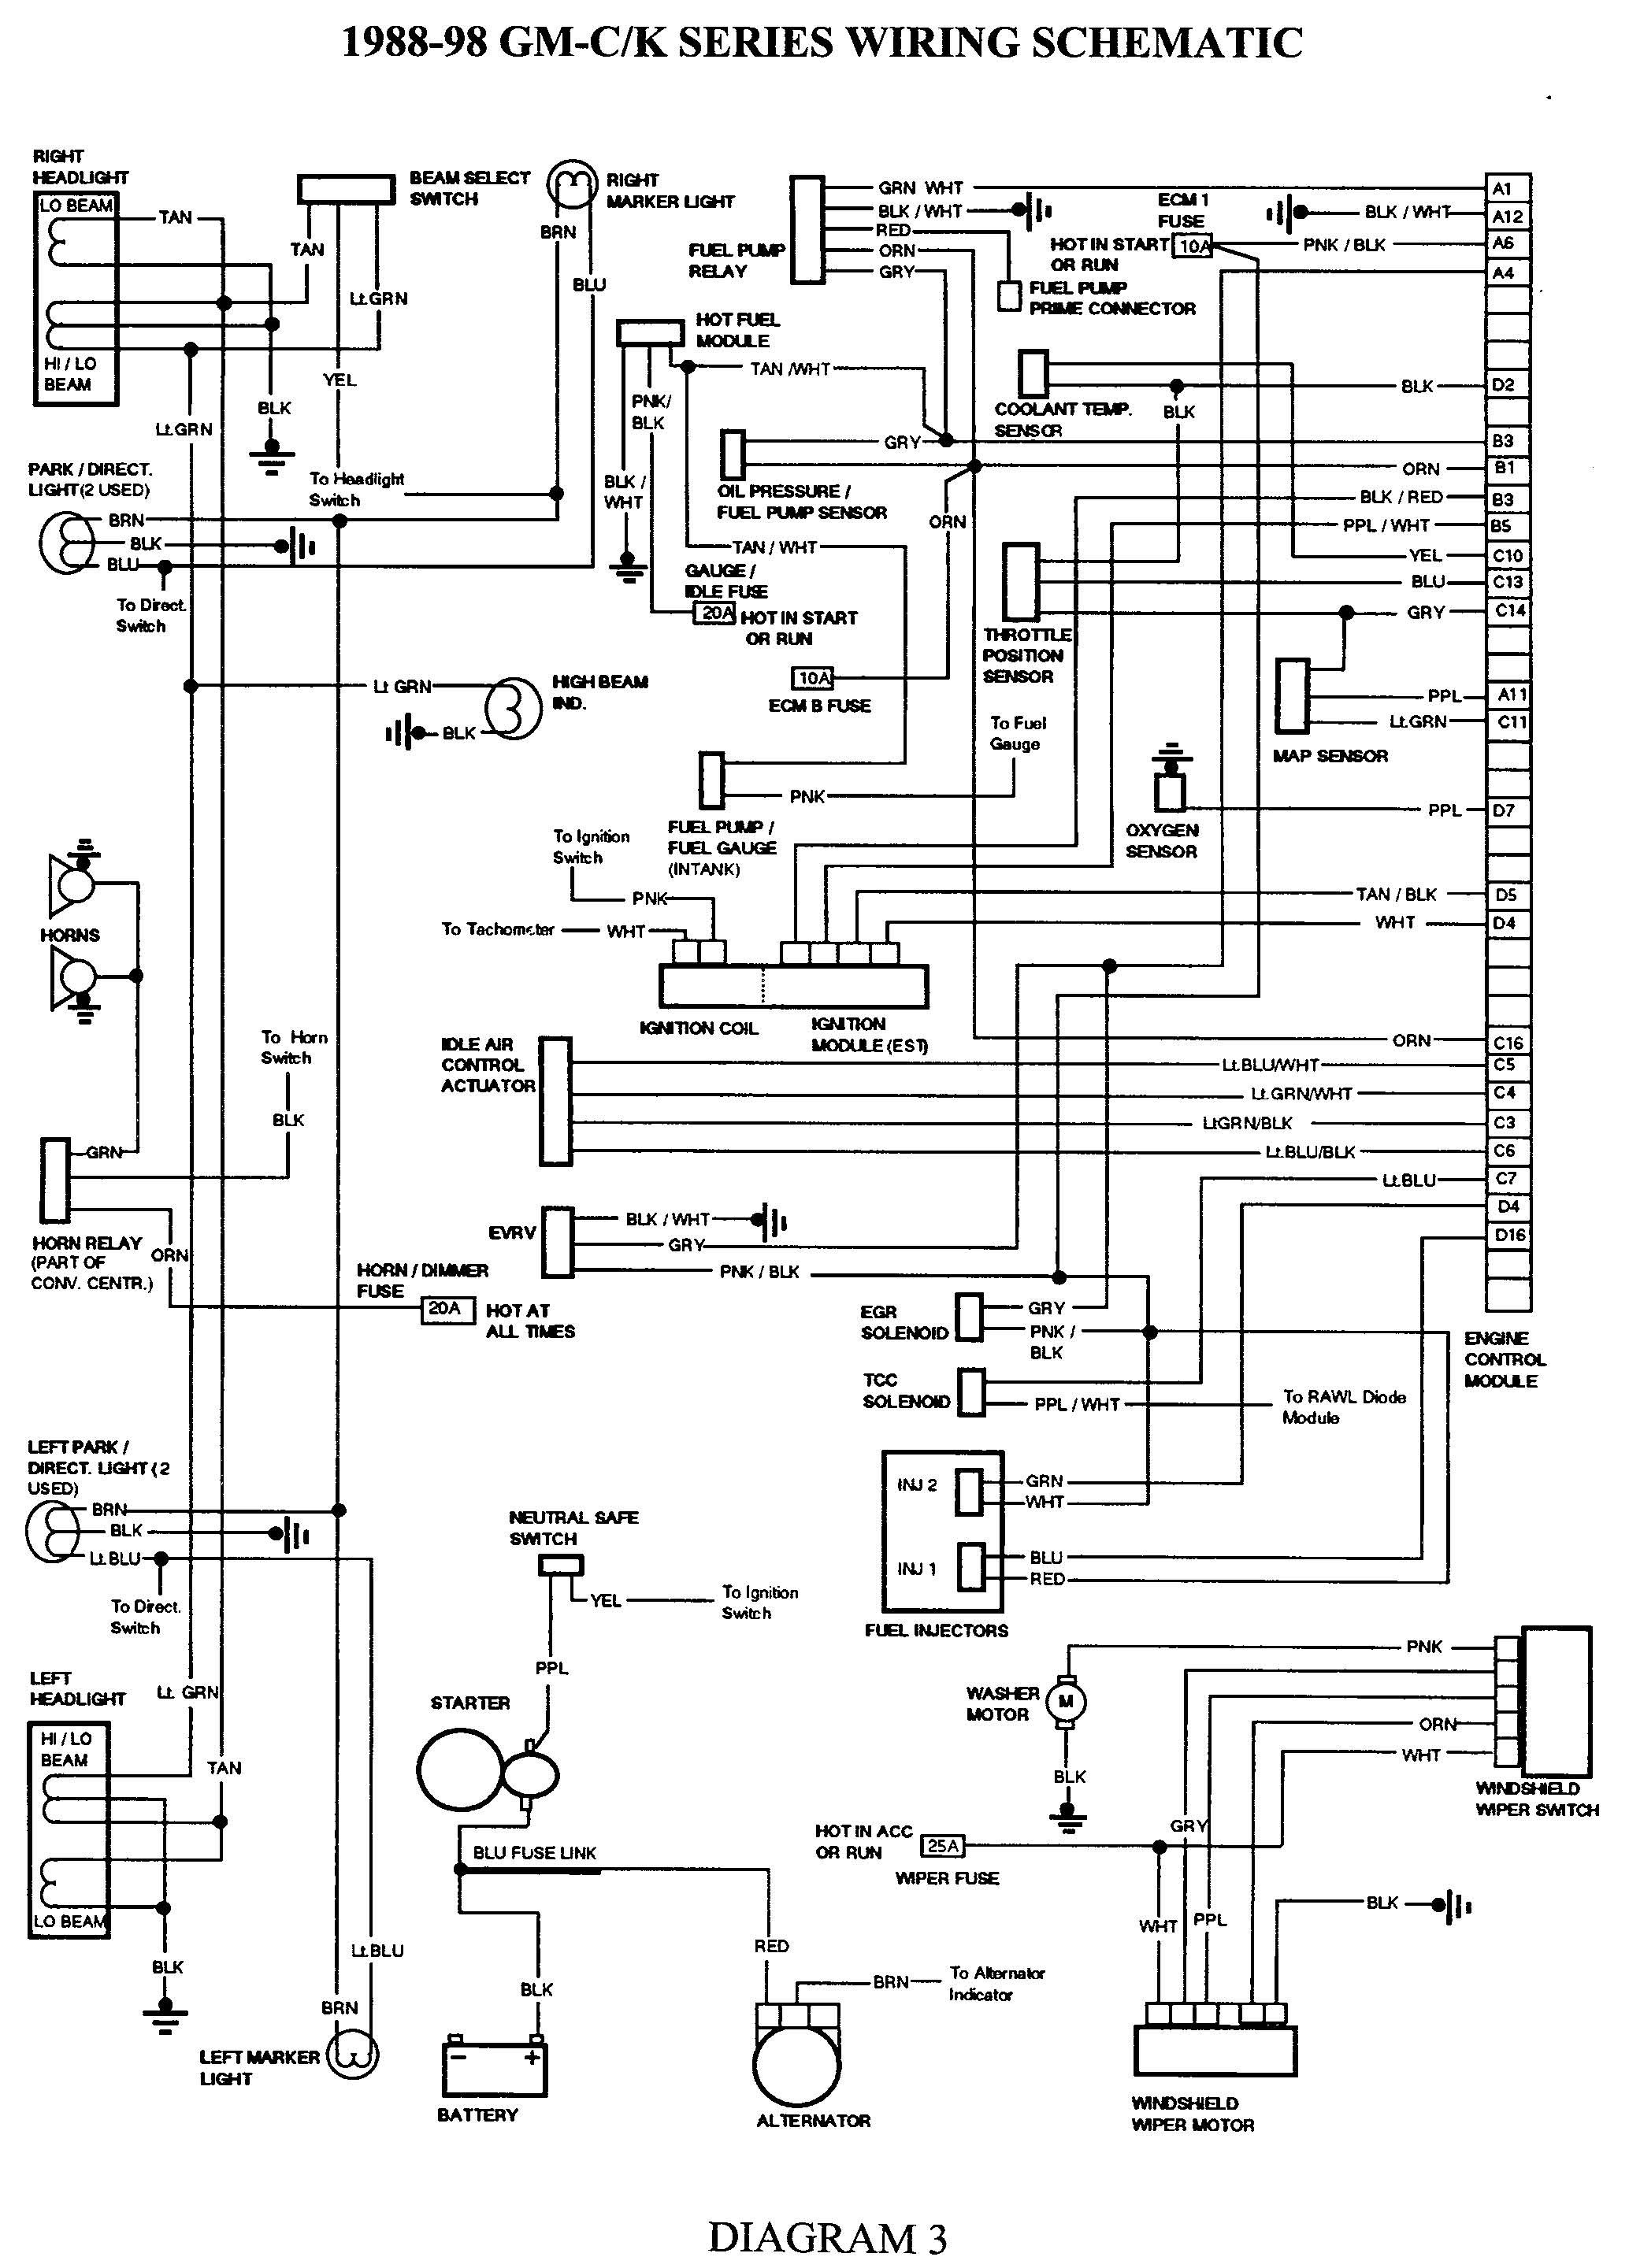 1999 chevy astro van wiring diagram